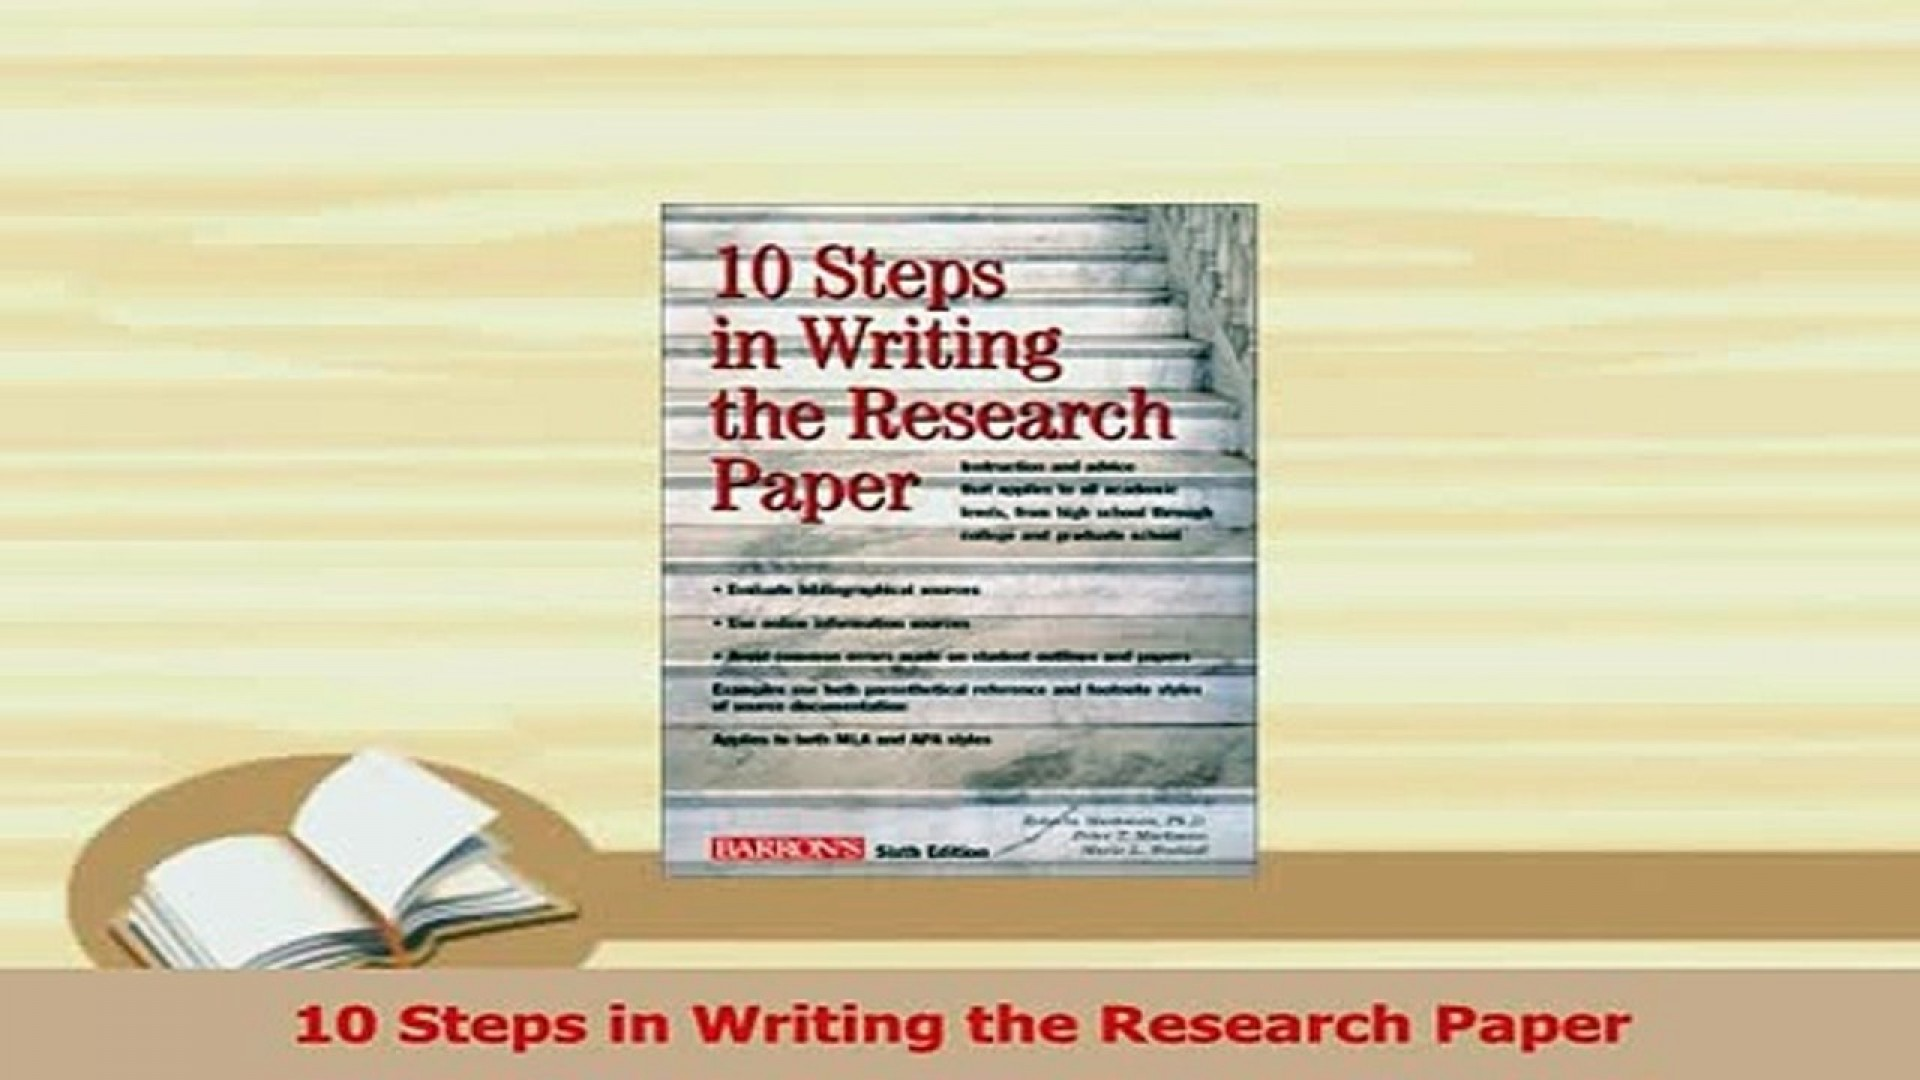 013 Steps To Write Basic Research Paper X720 Tl  Unbelievable 10 A Writing Ppt1920